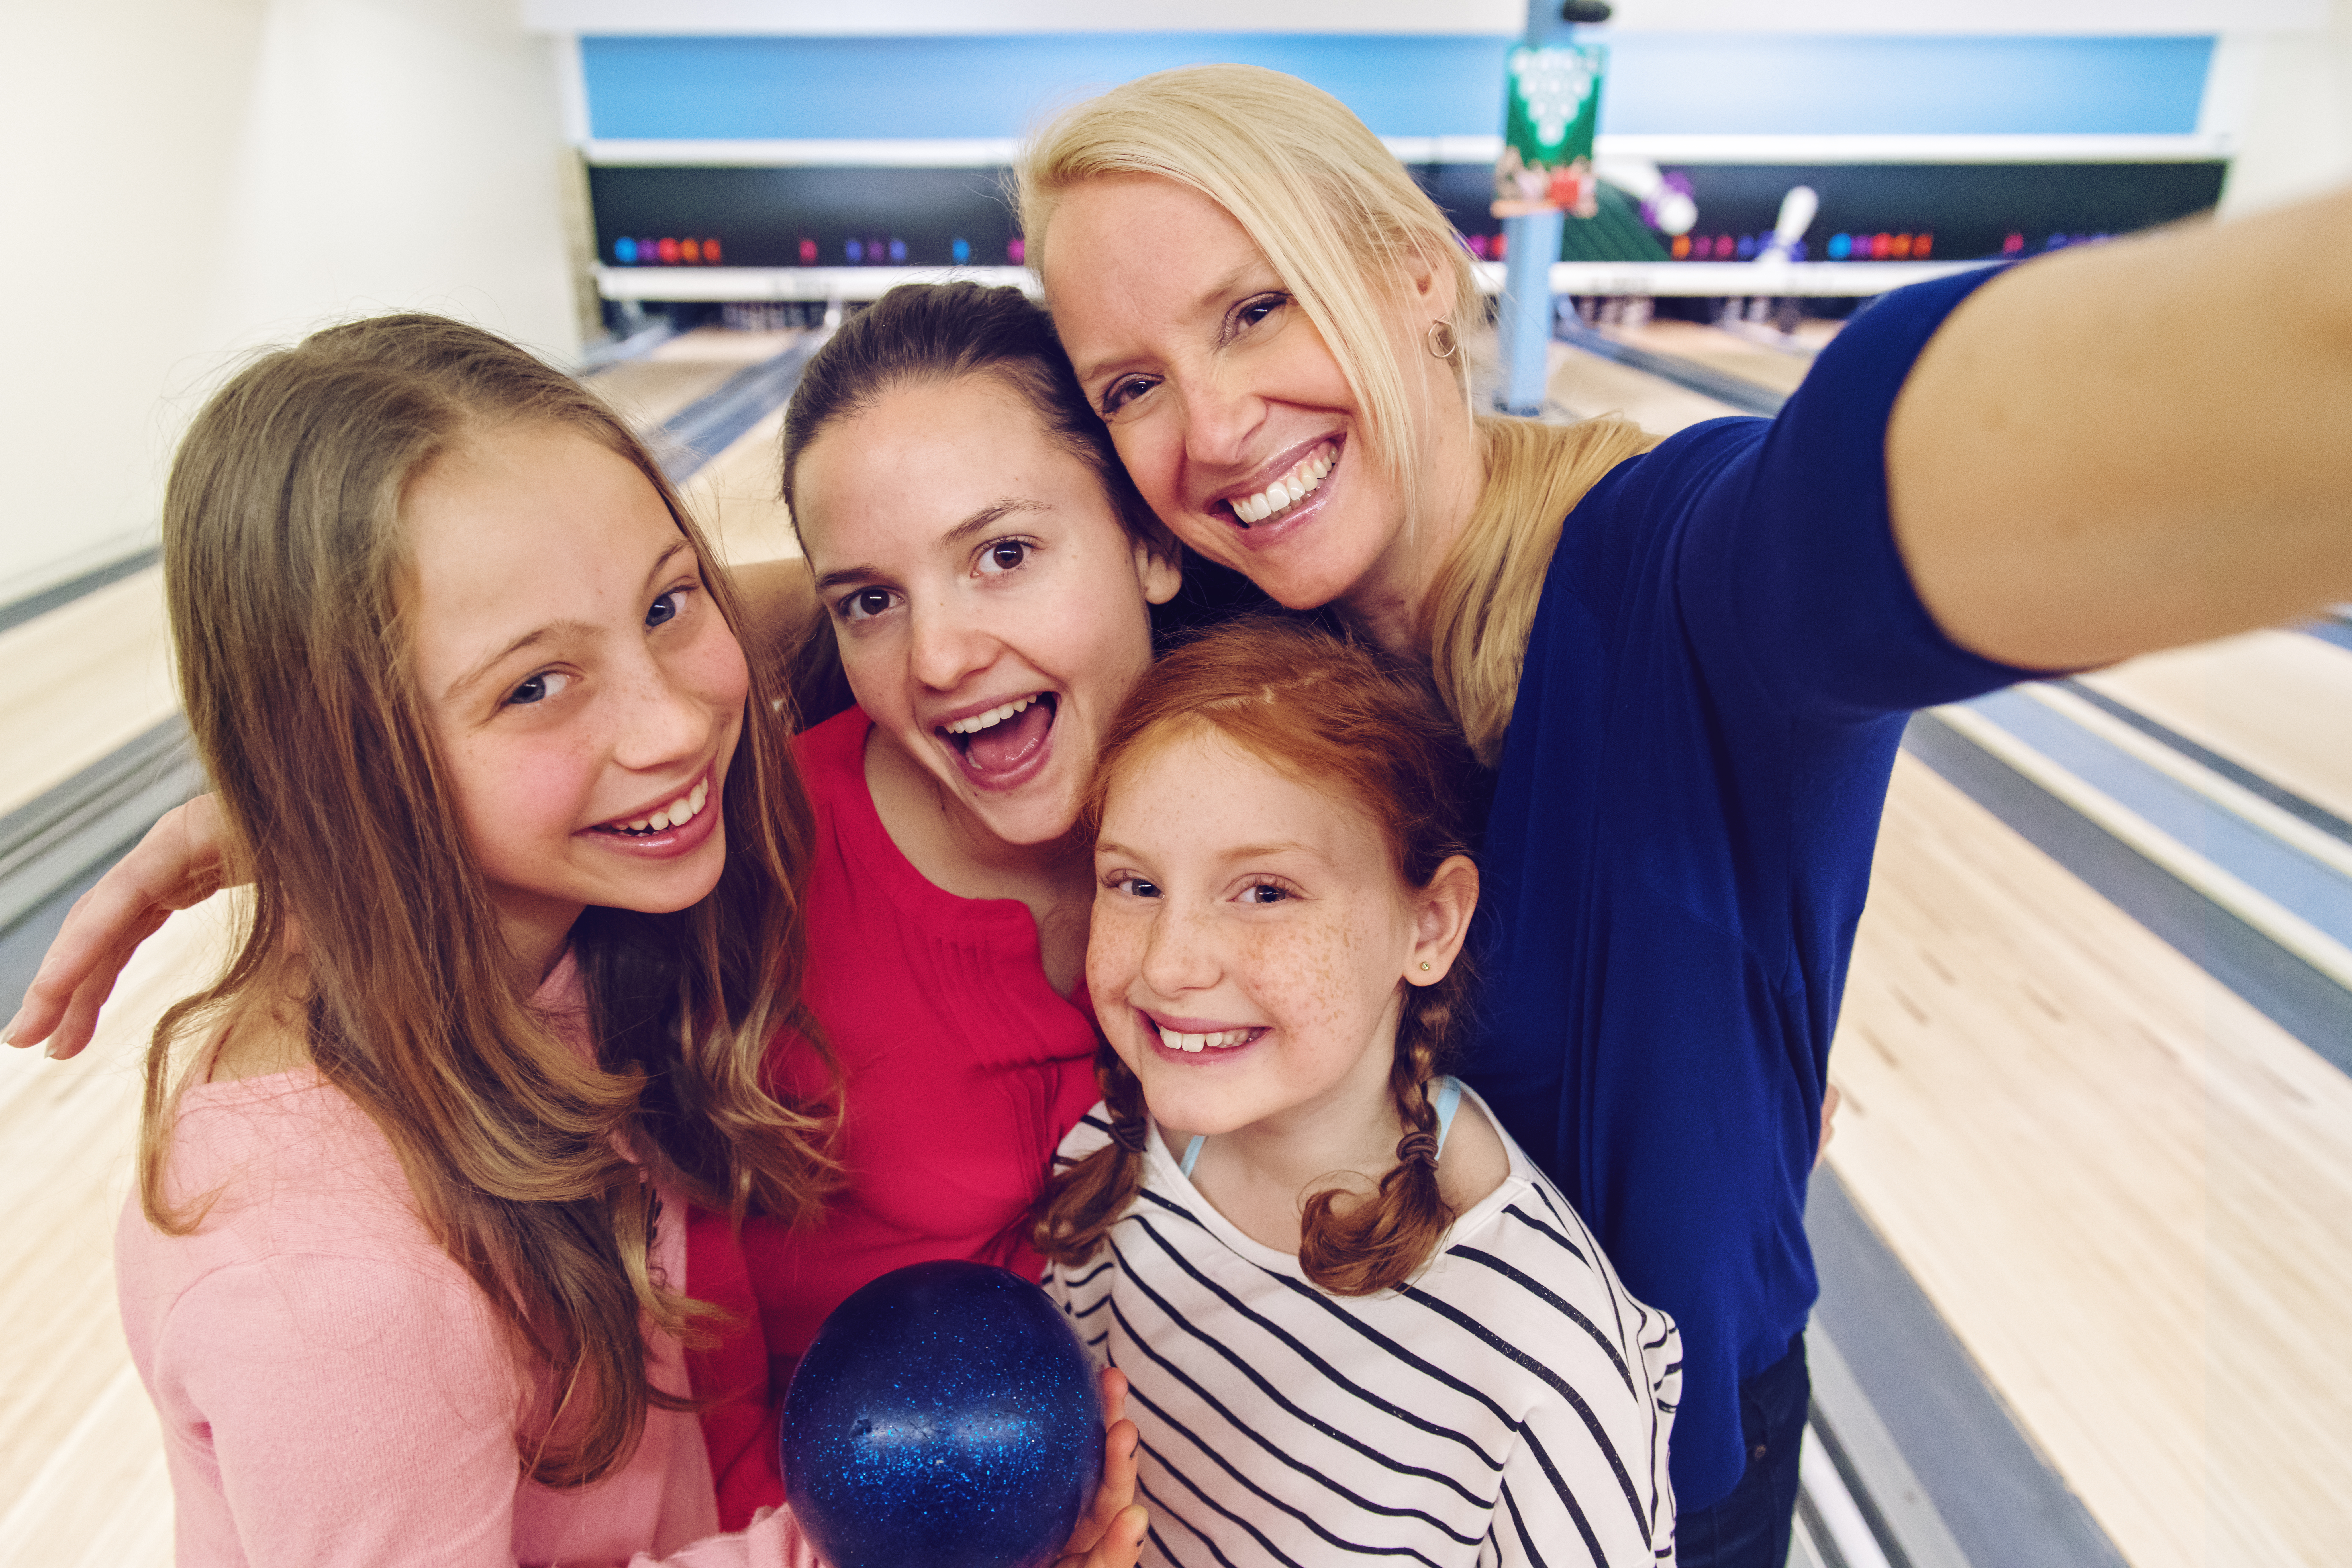 Girls at the bowling making selfies